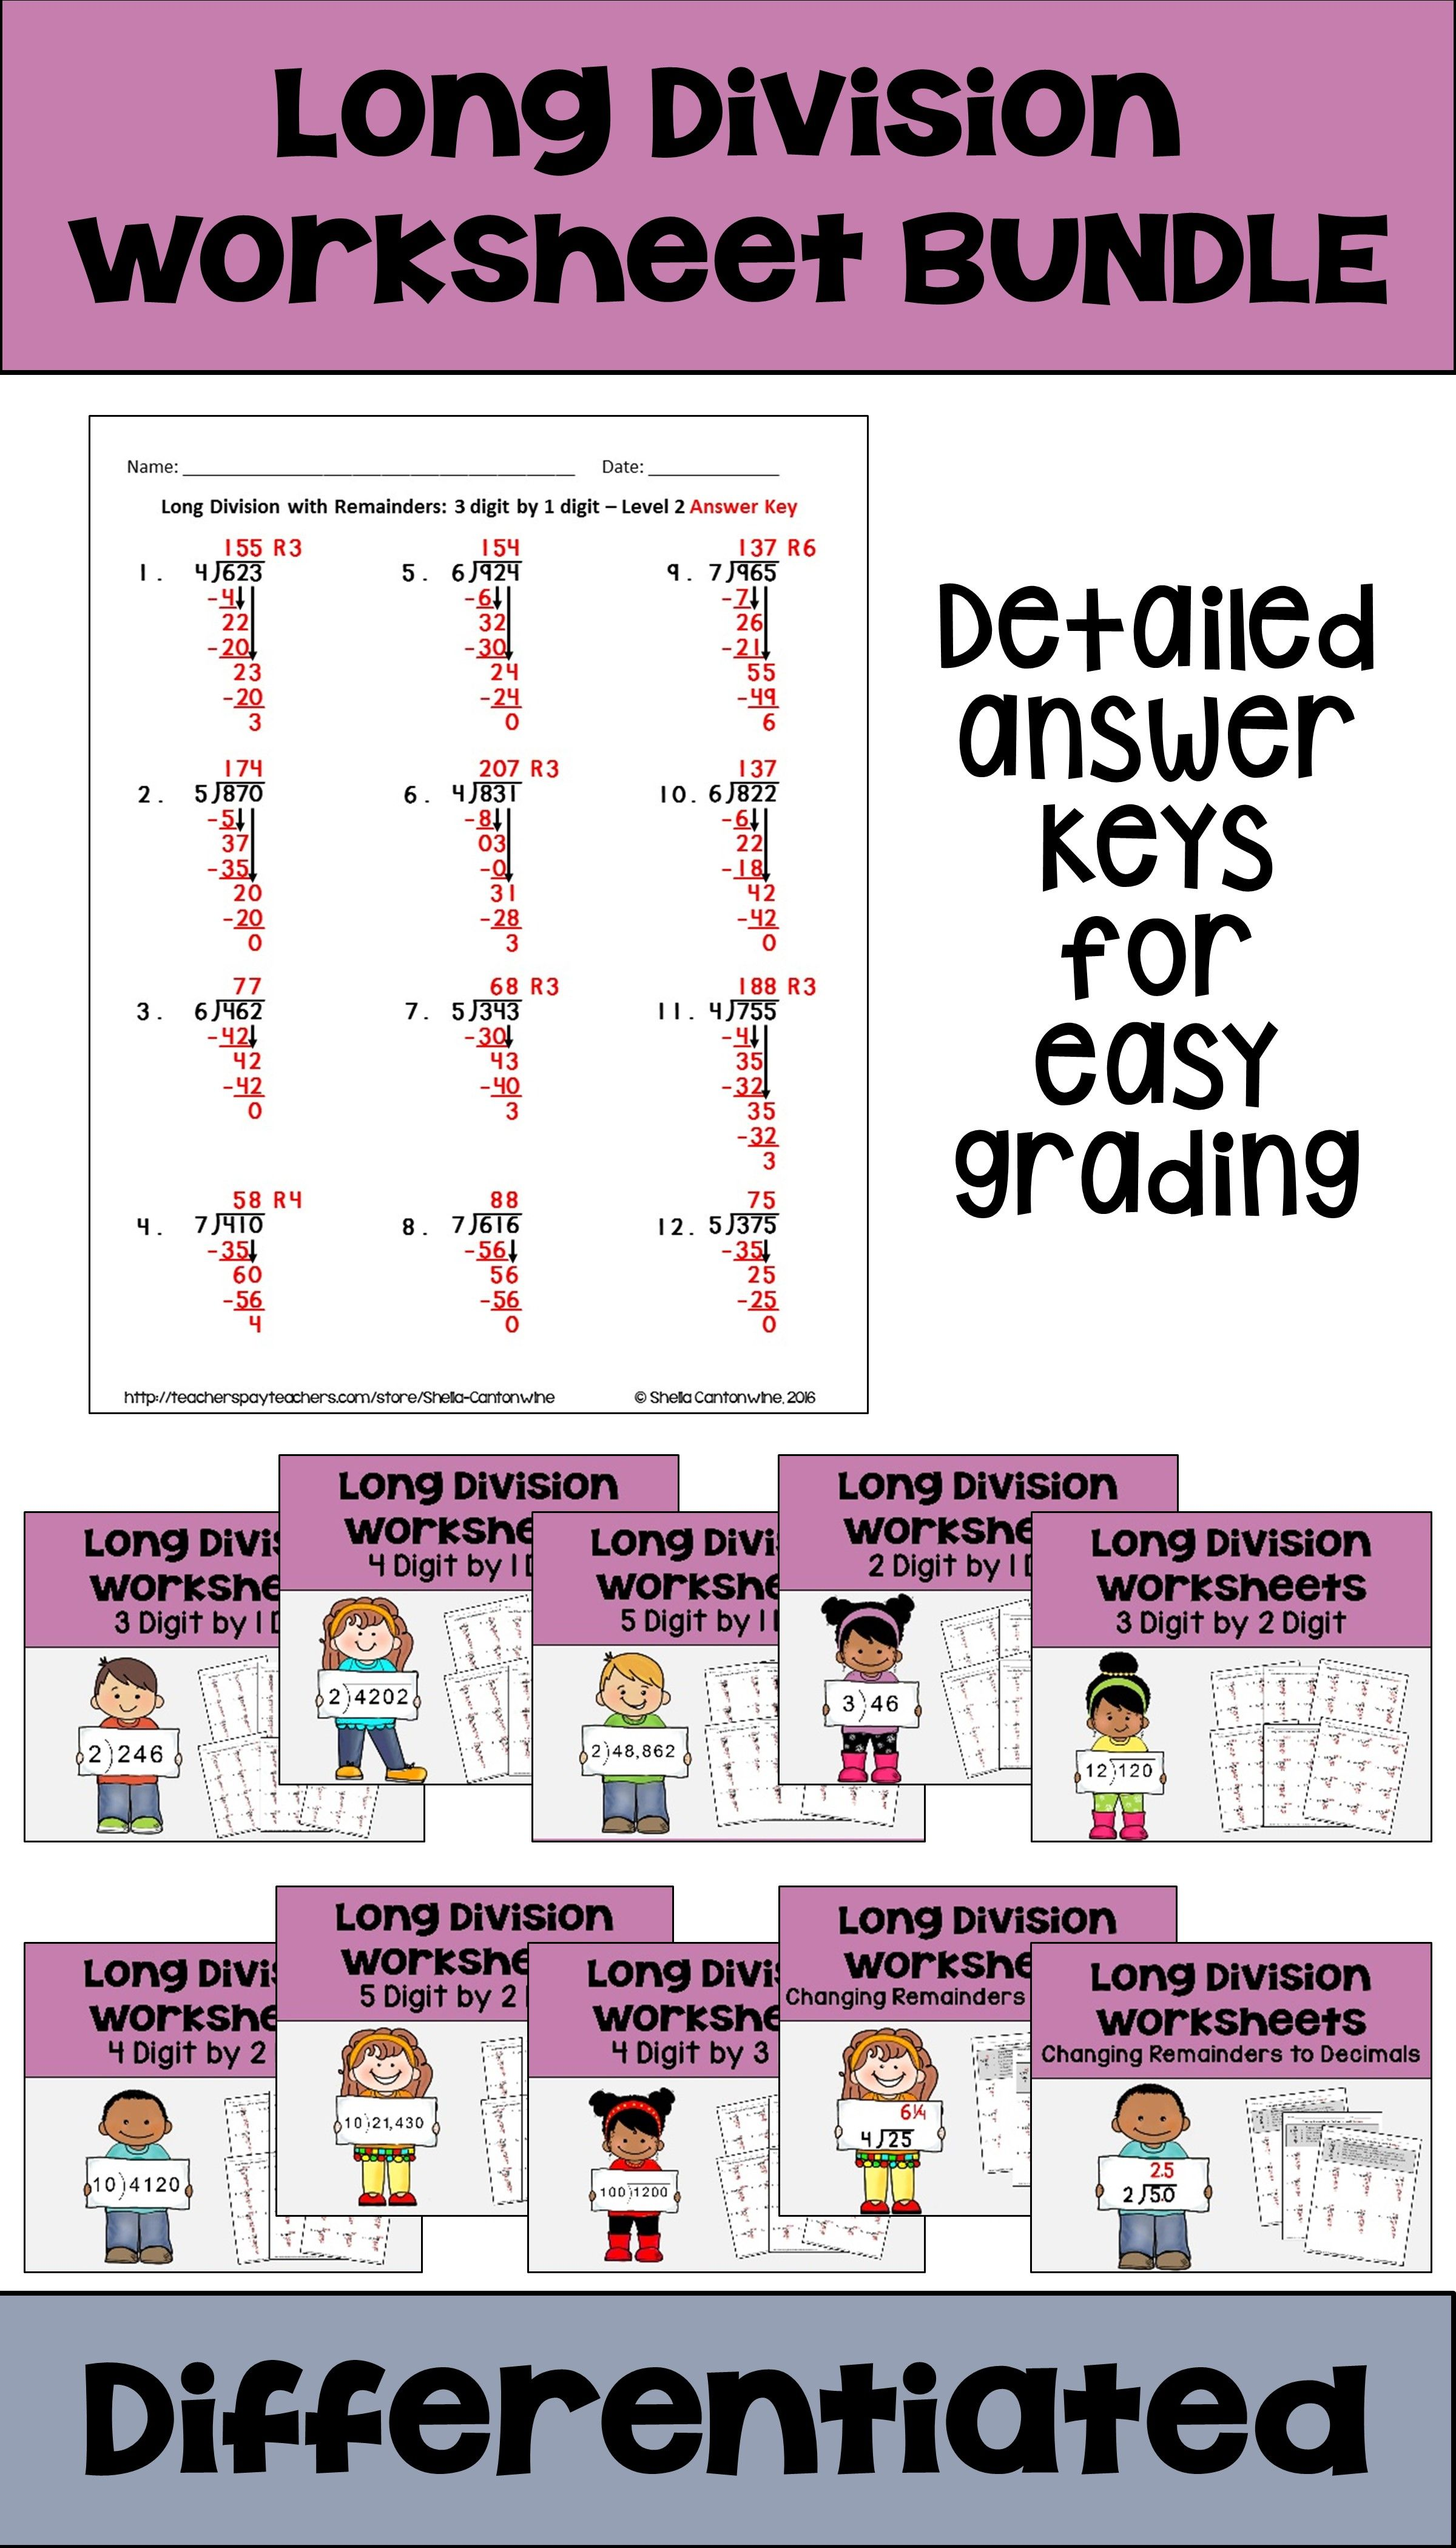 long division worksheet bundle differentiated with detailed answer keys differentiated math. Black Bedroom Furniture Sets. Home Design Ideas